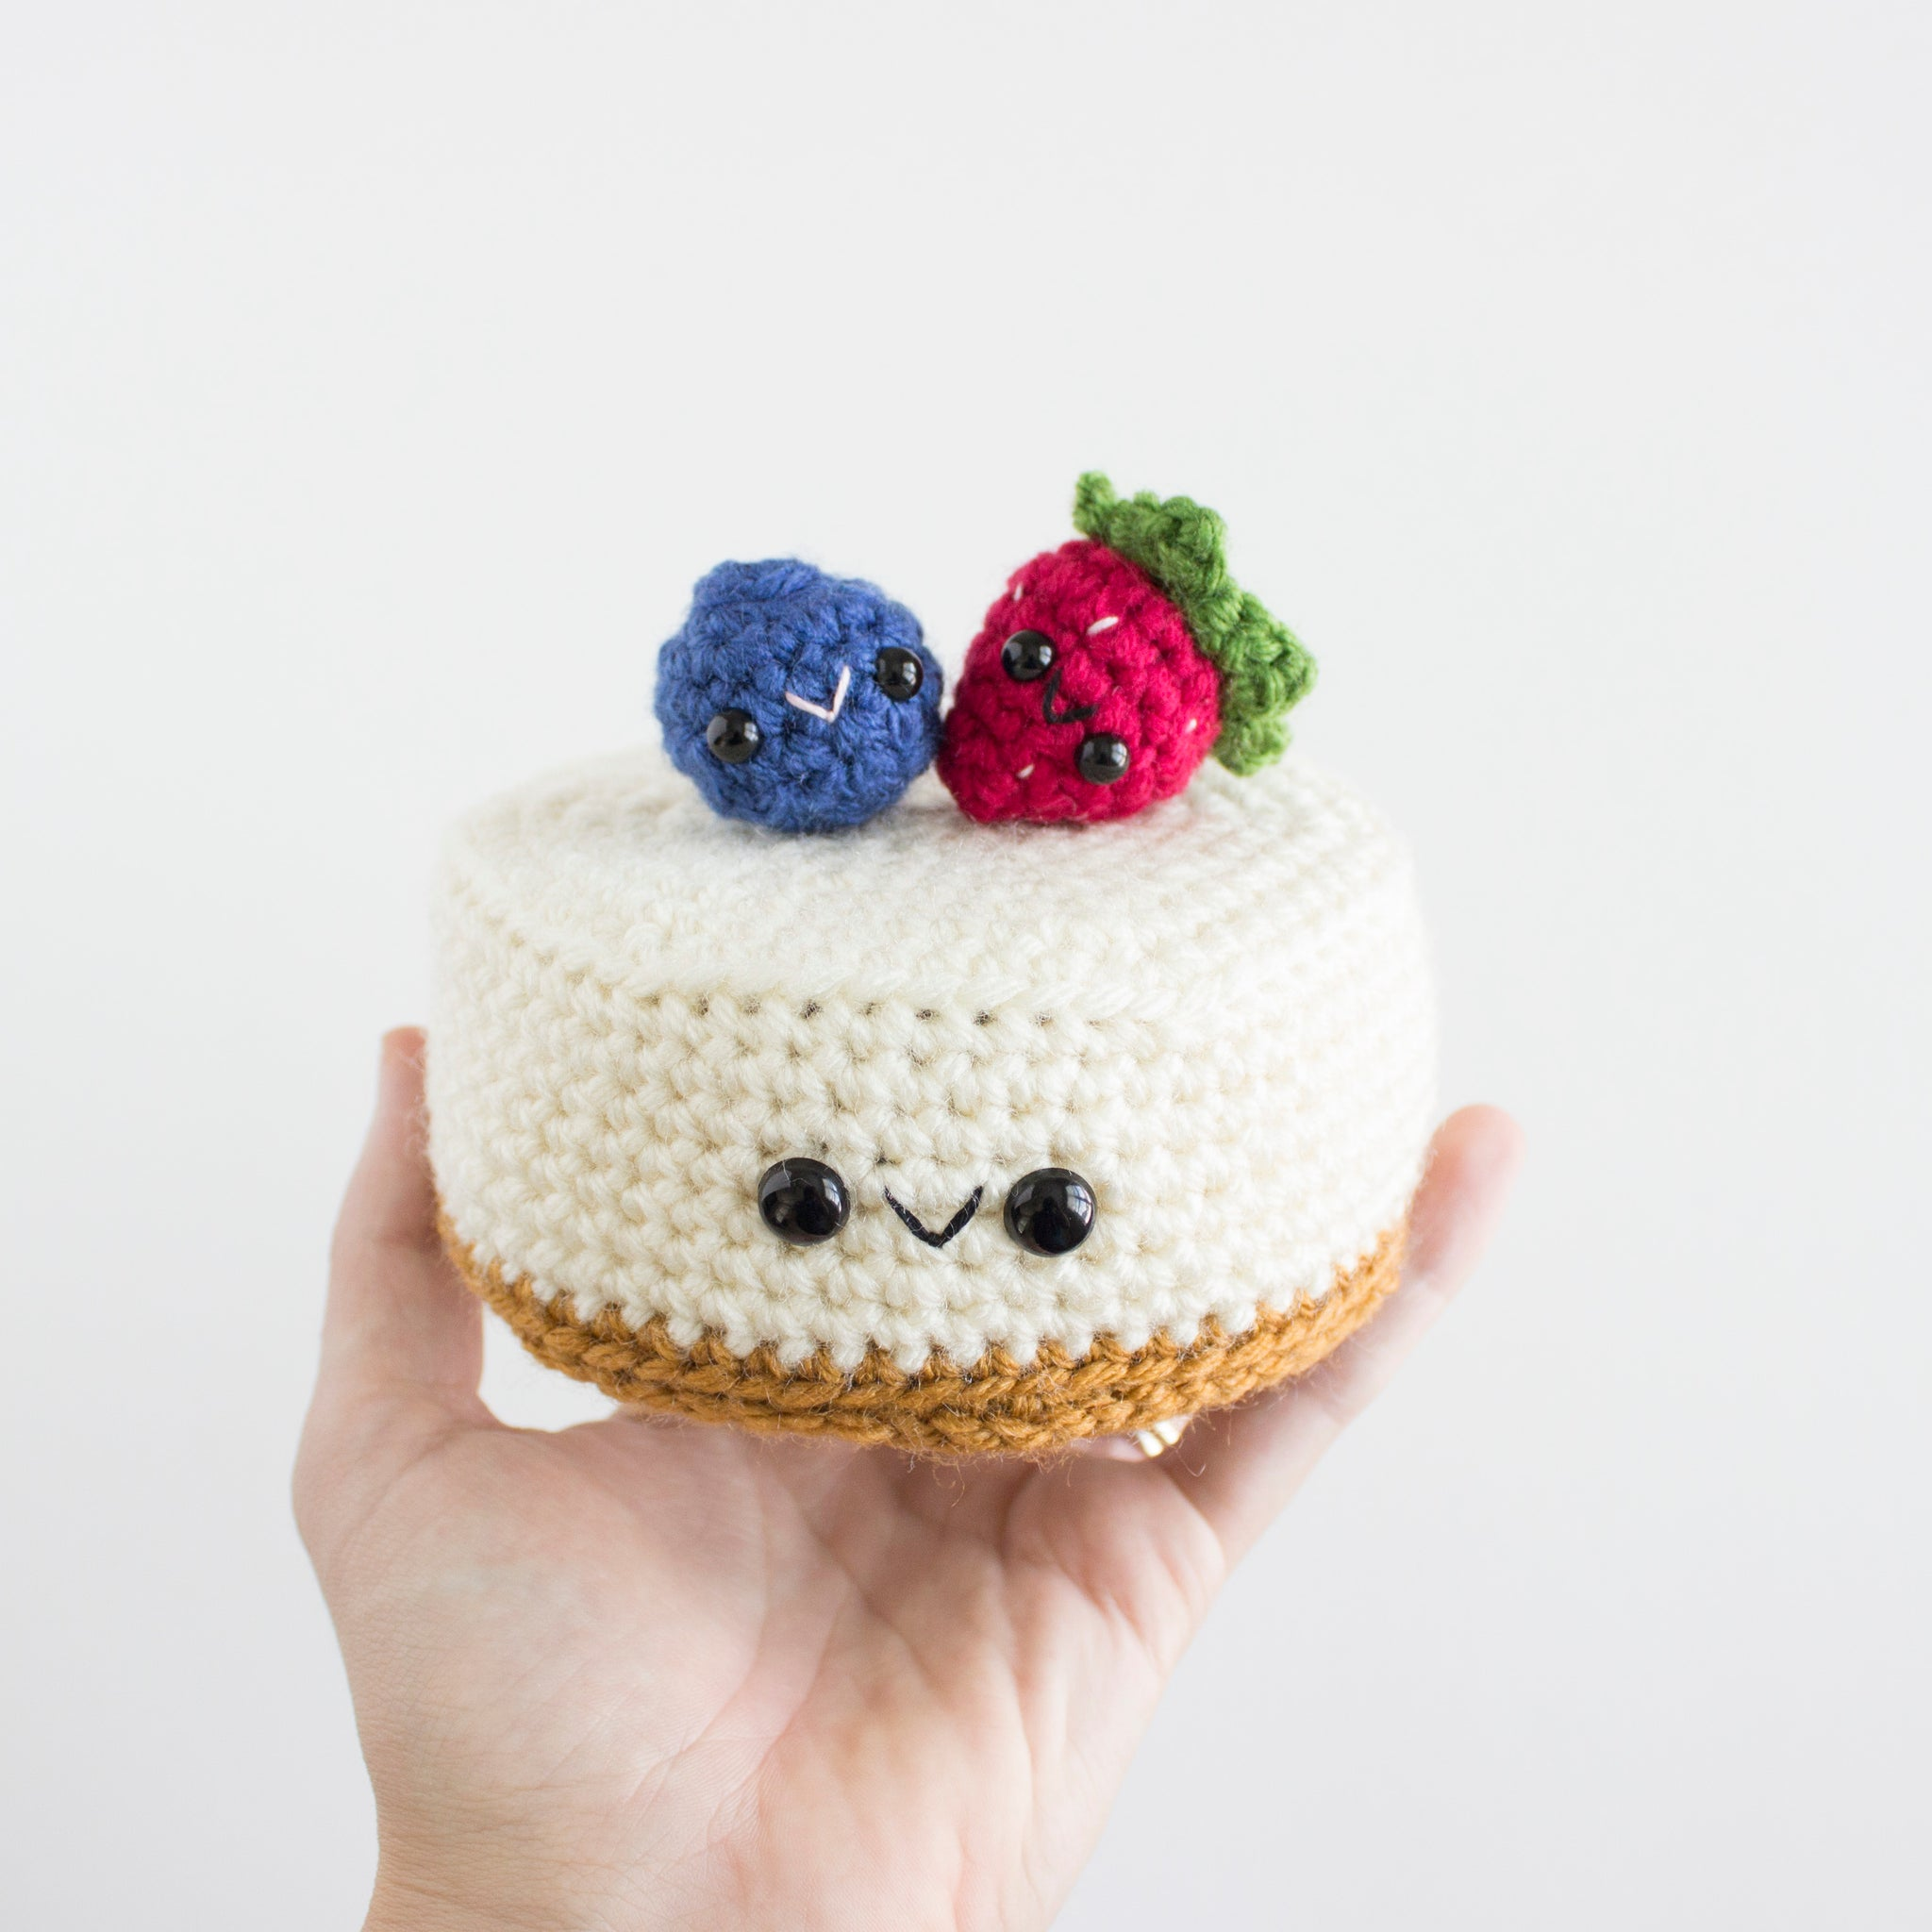 Crochet Amigurumi Cheesecake with Berries- READY TO SHIP